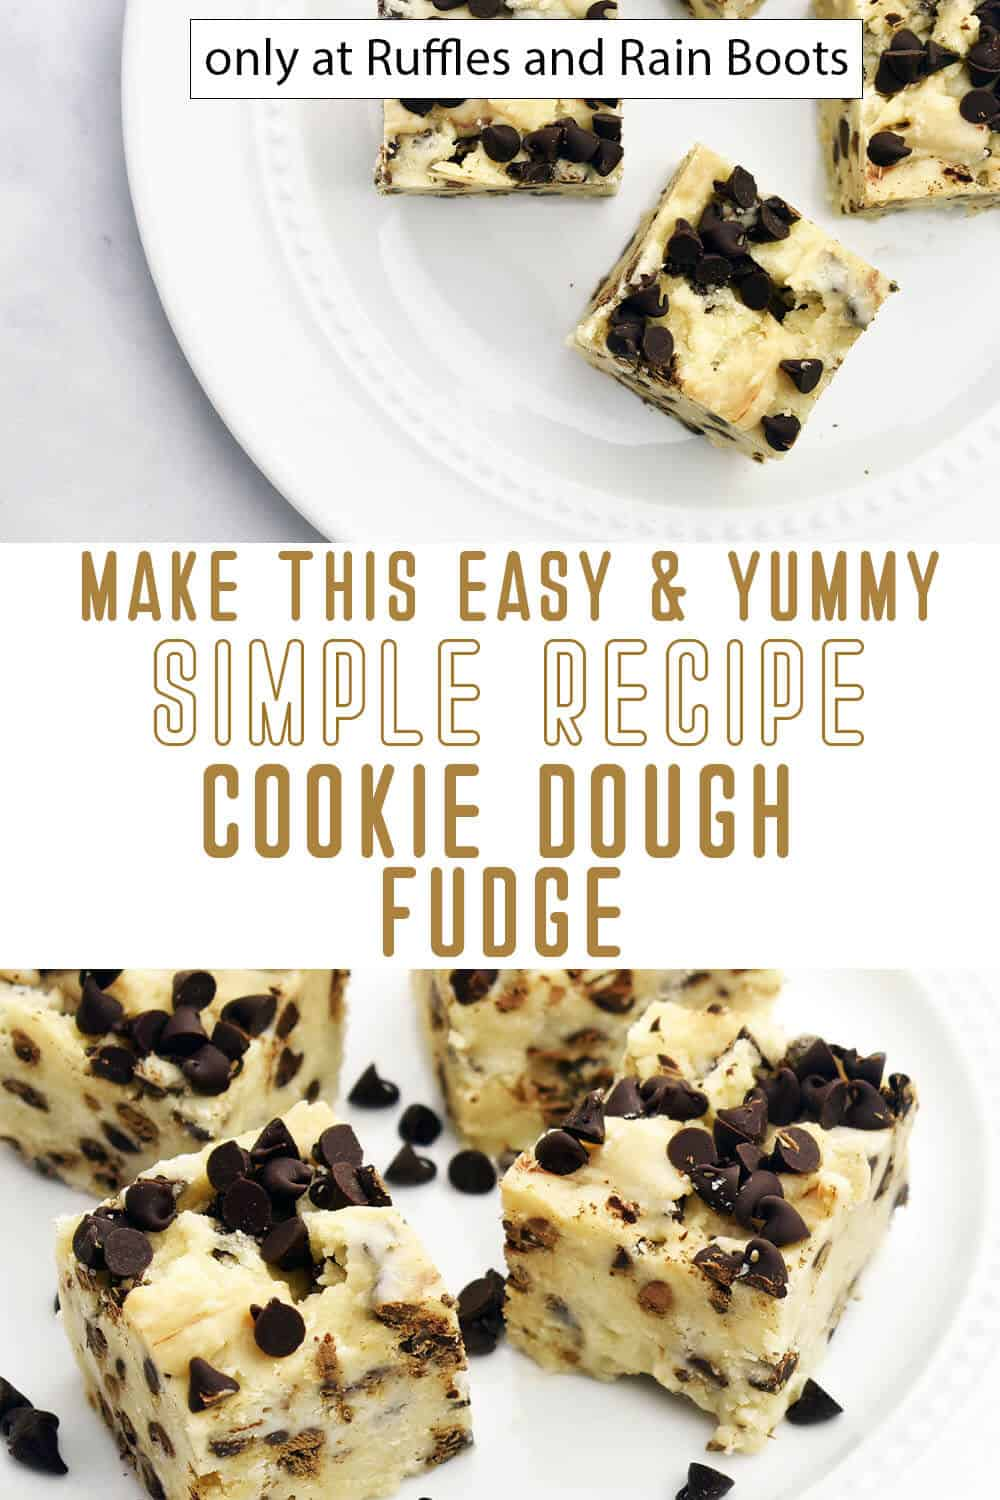 photo collage of homemade cookie dough fudge recipe with text which reads make this easy & yummy simple recipe cookie dough fudge